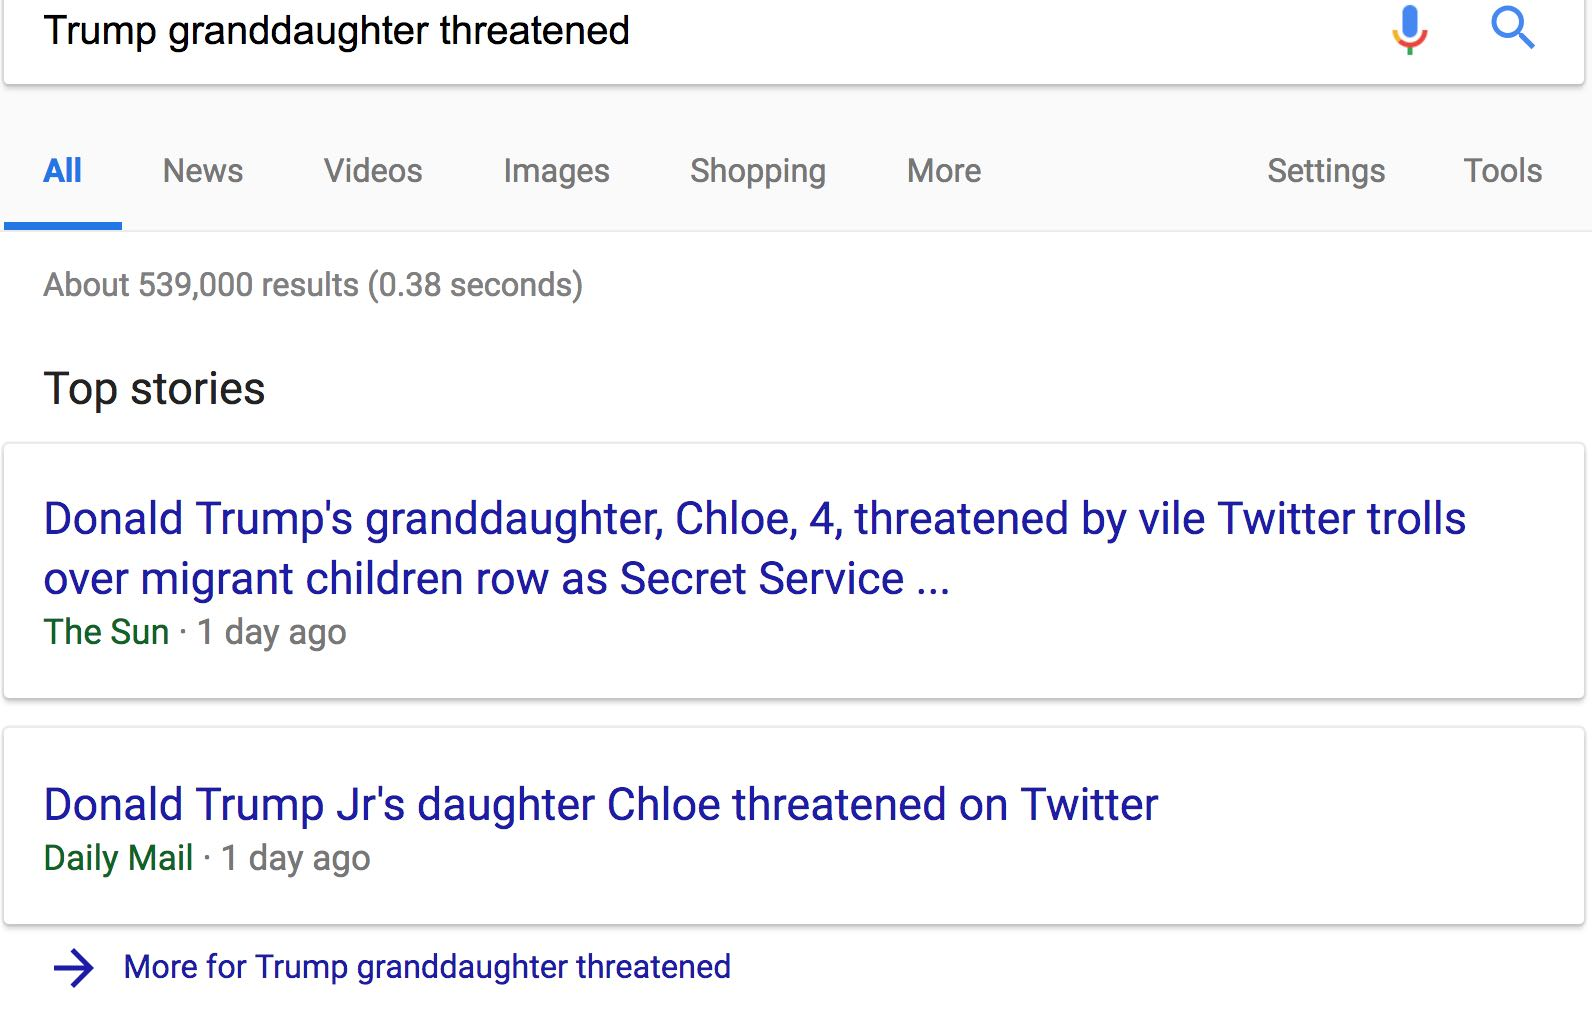 TrumpGranddaughterUKgoogleResults062318